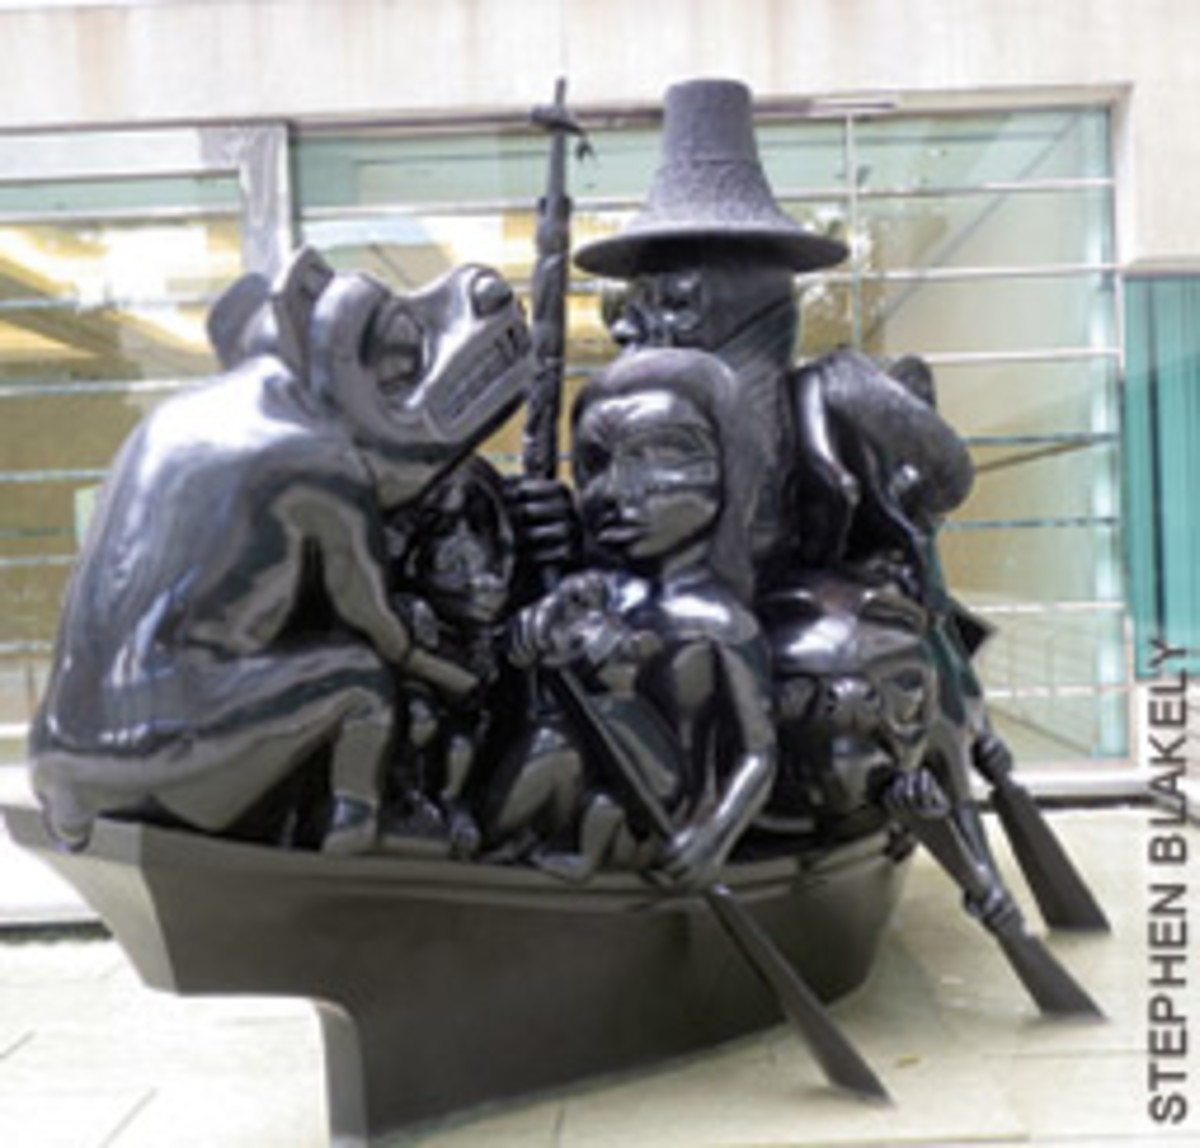 Bill Reid's sculpture The Black Canoe